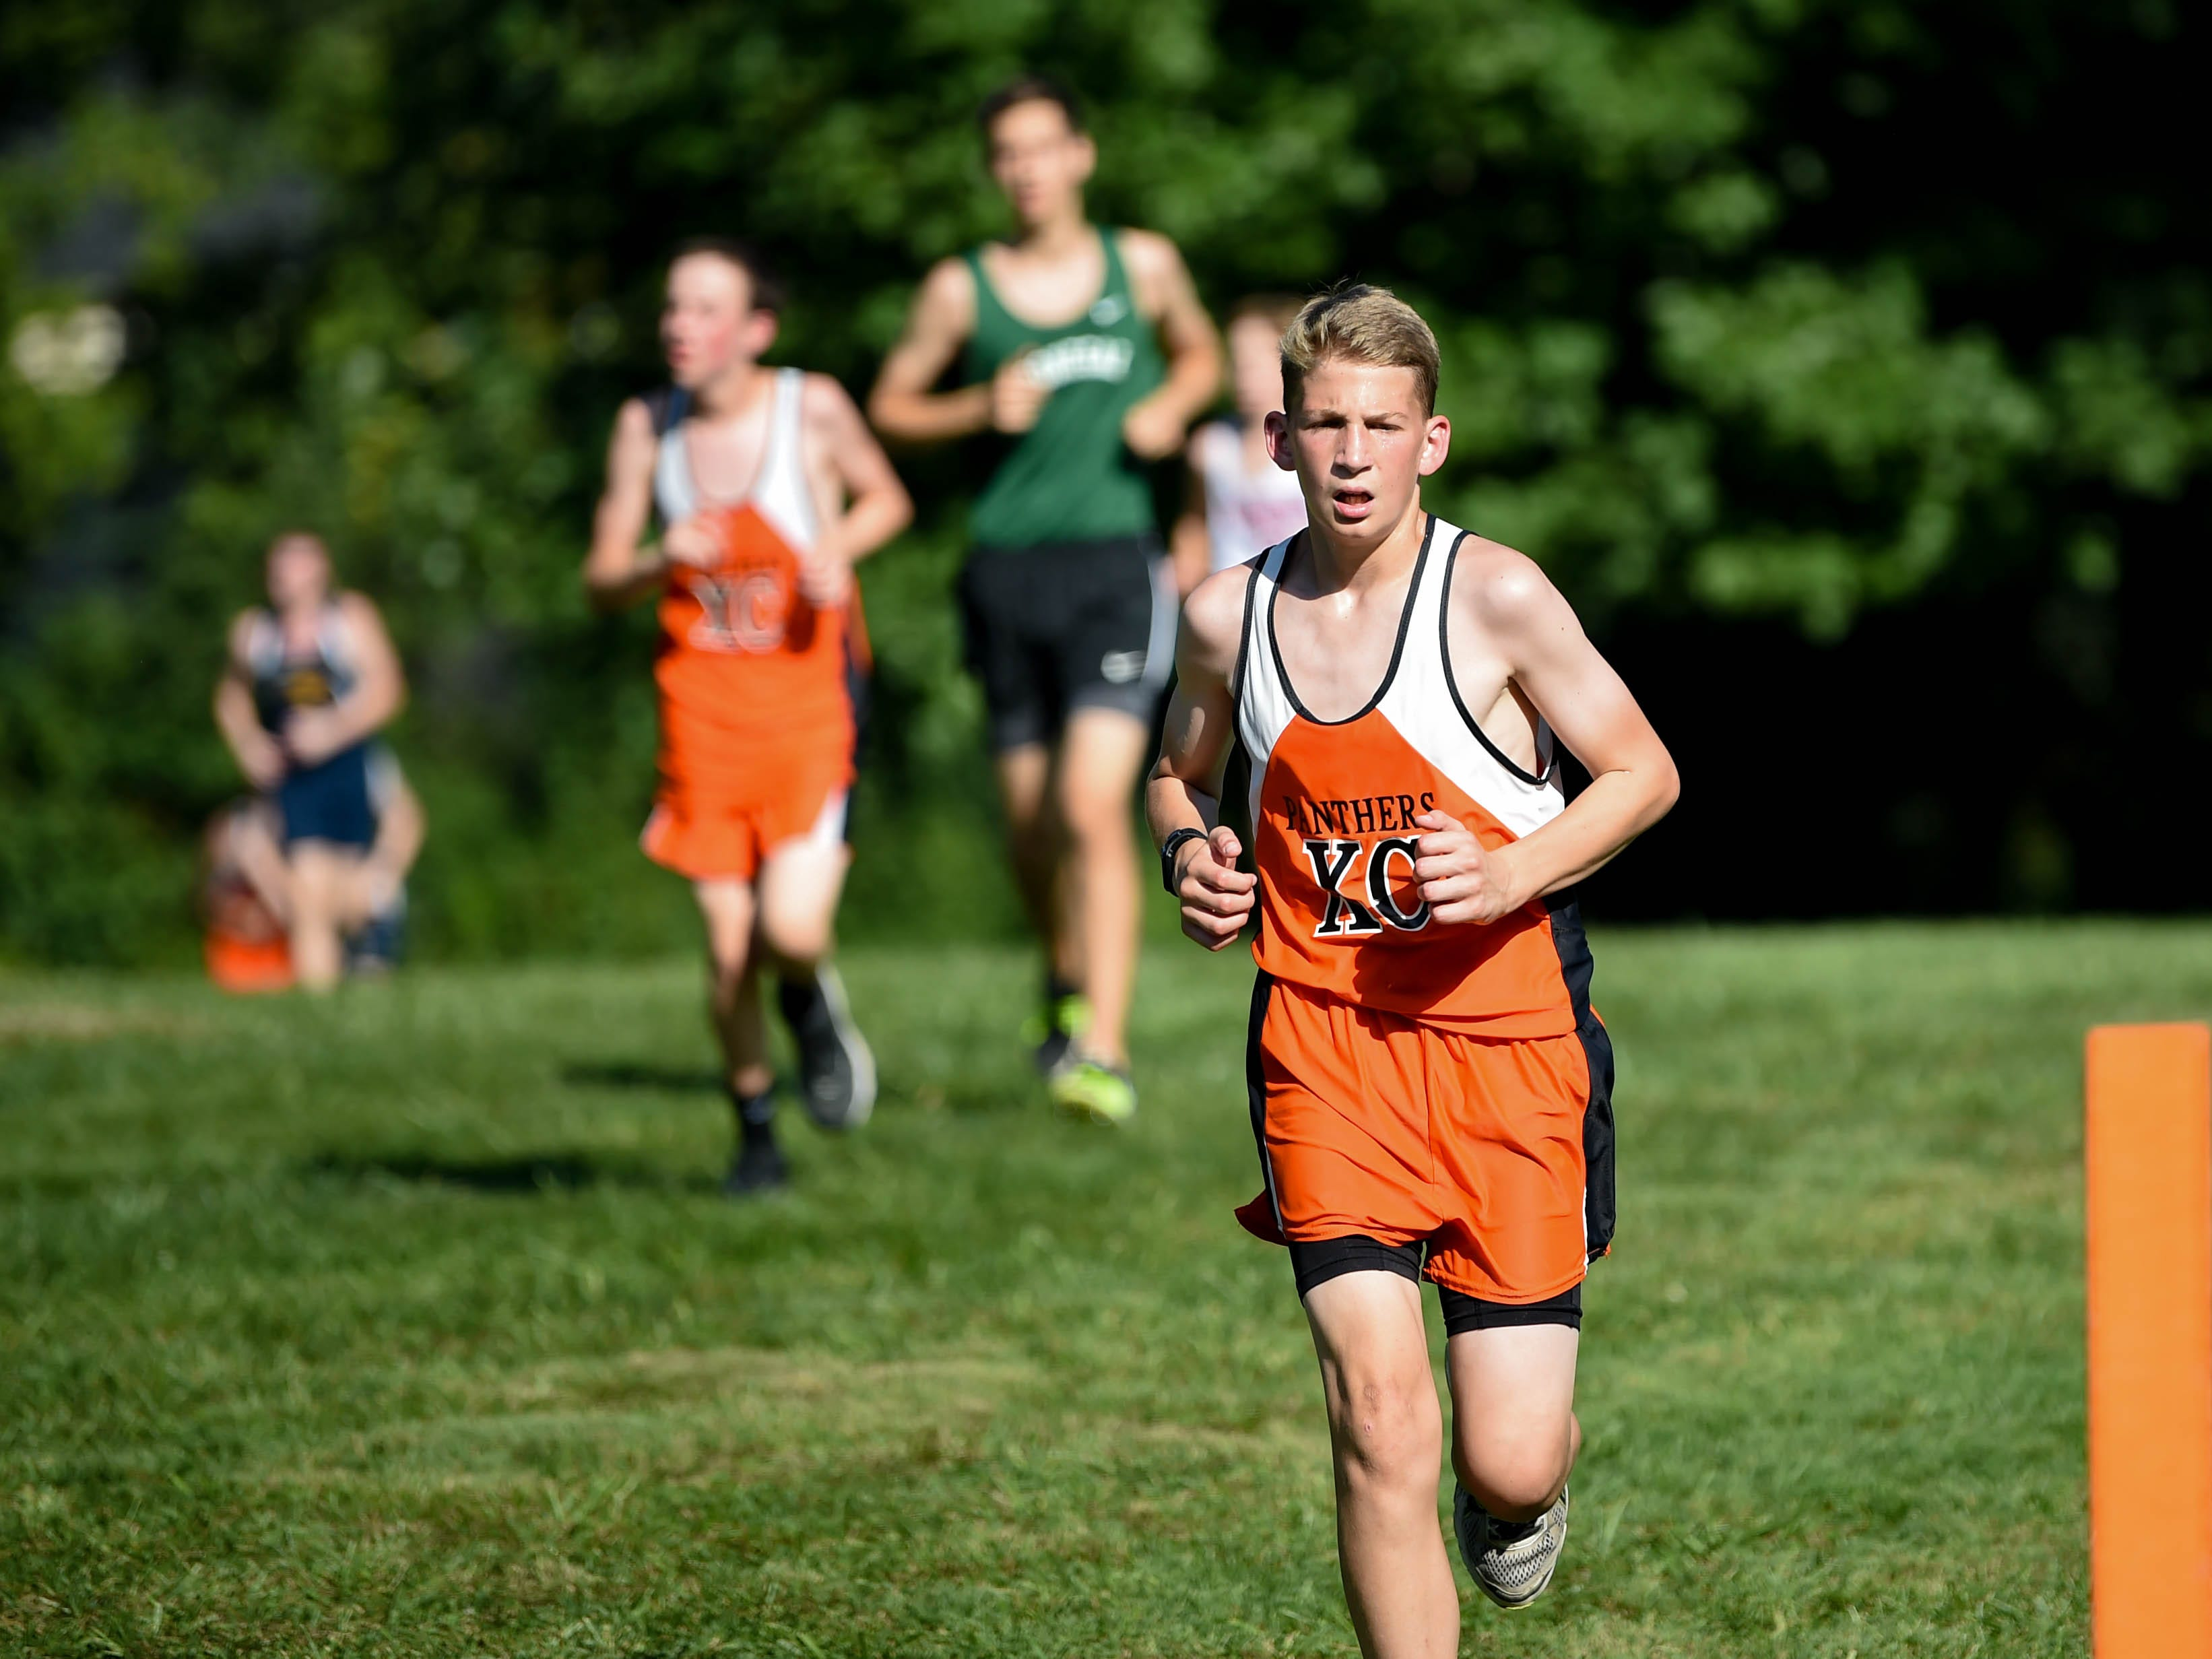 Central York coasts out in front during the Cross Country scrimmage at John Rudy County Park on August 30, 2018.